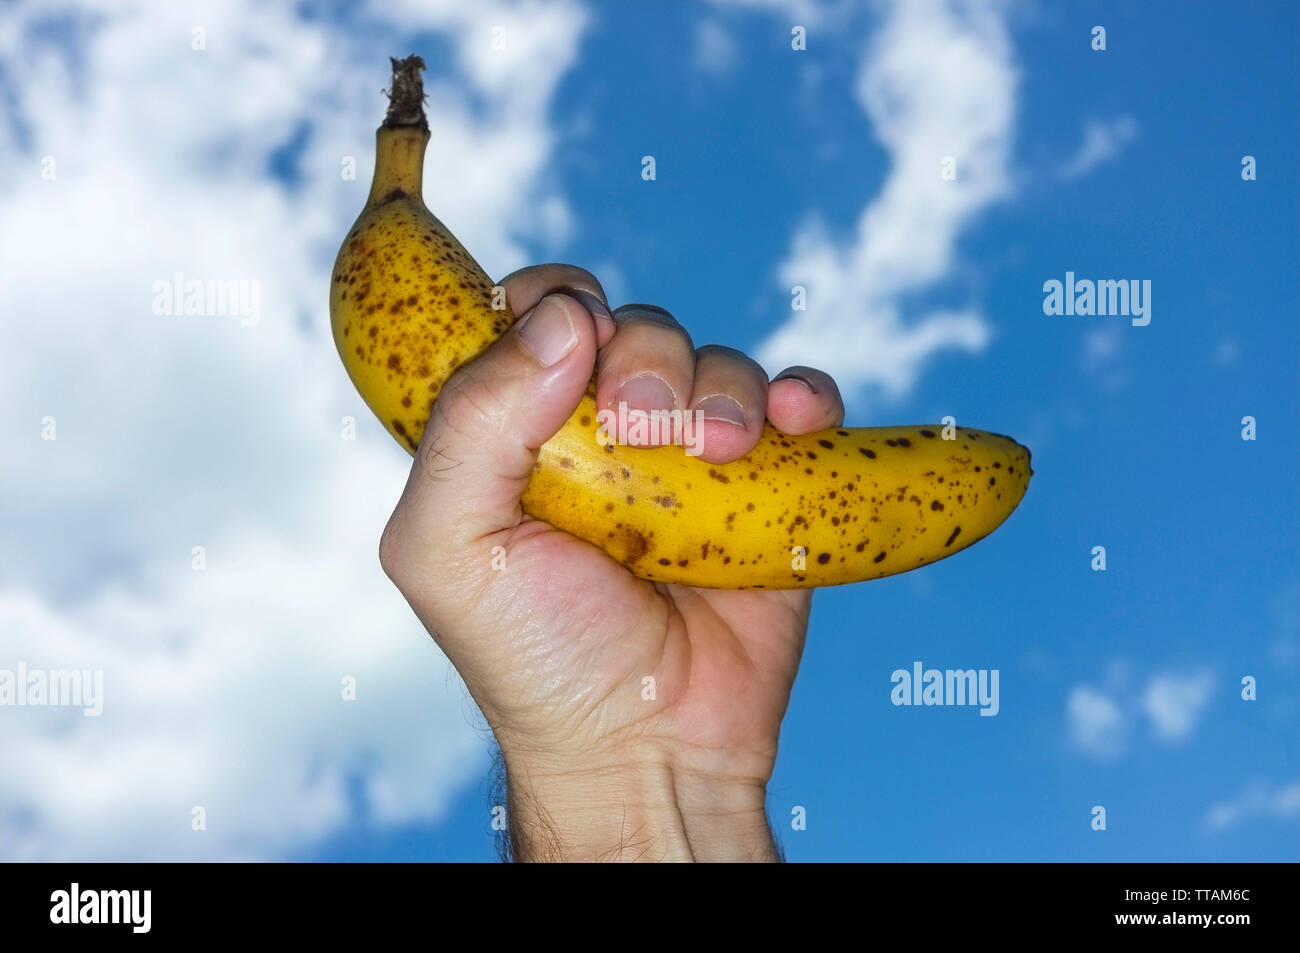 hand-of-a-man-holding-a-ripe-yellow-bana